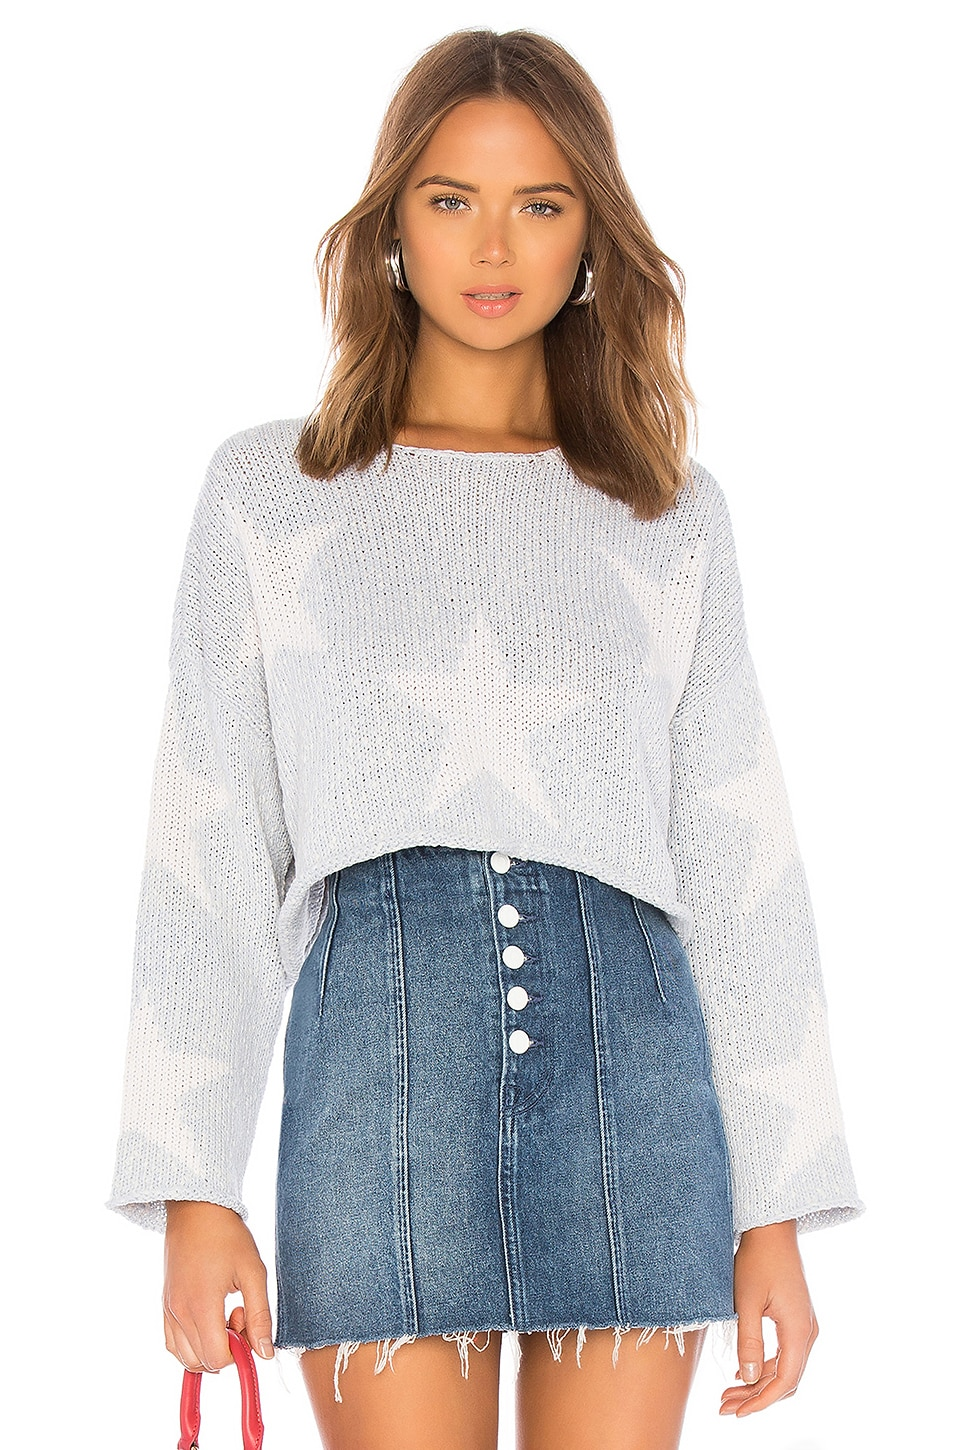 Star Crossed Star Sweater